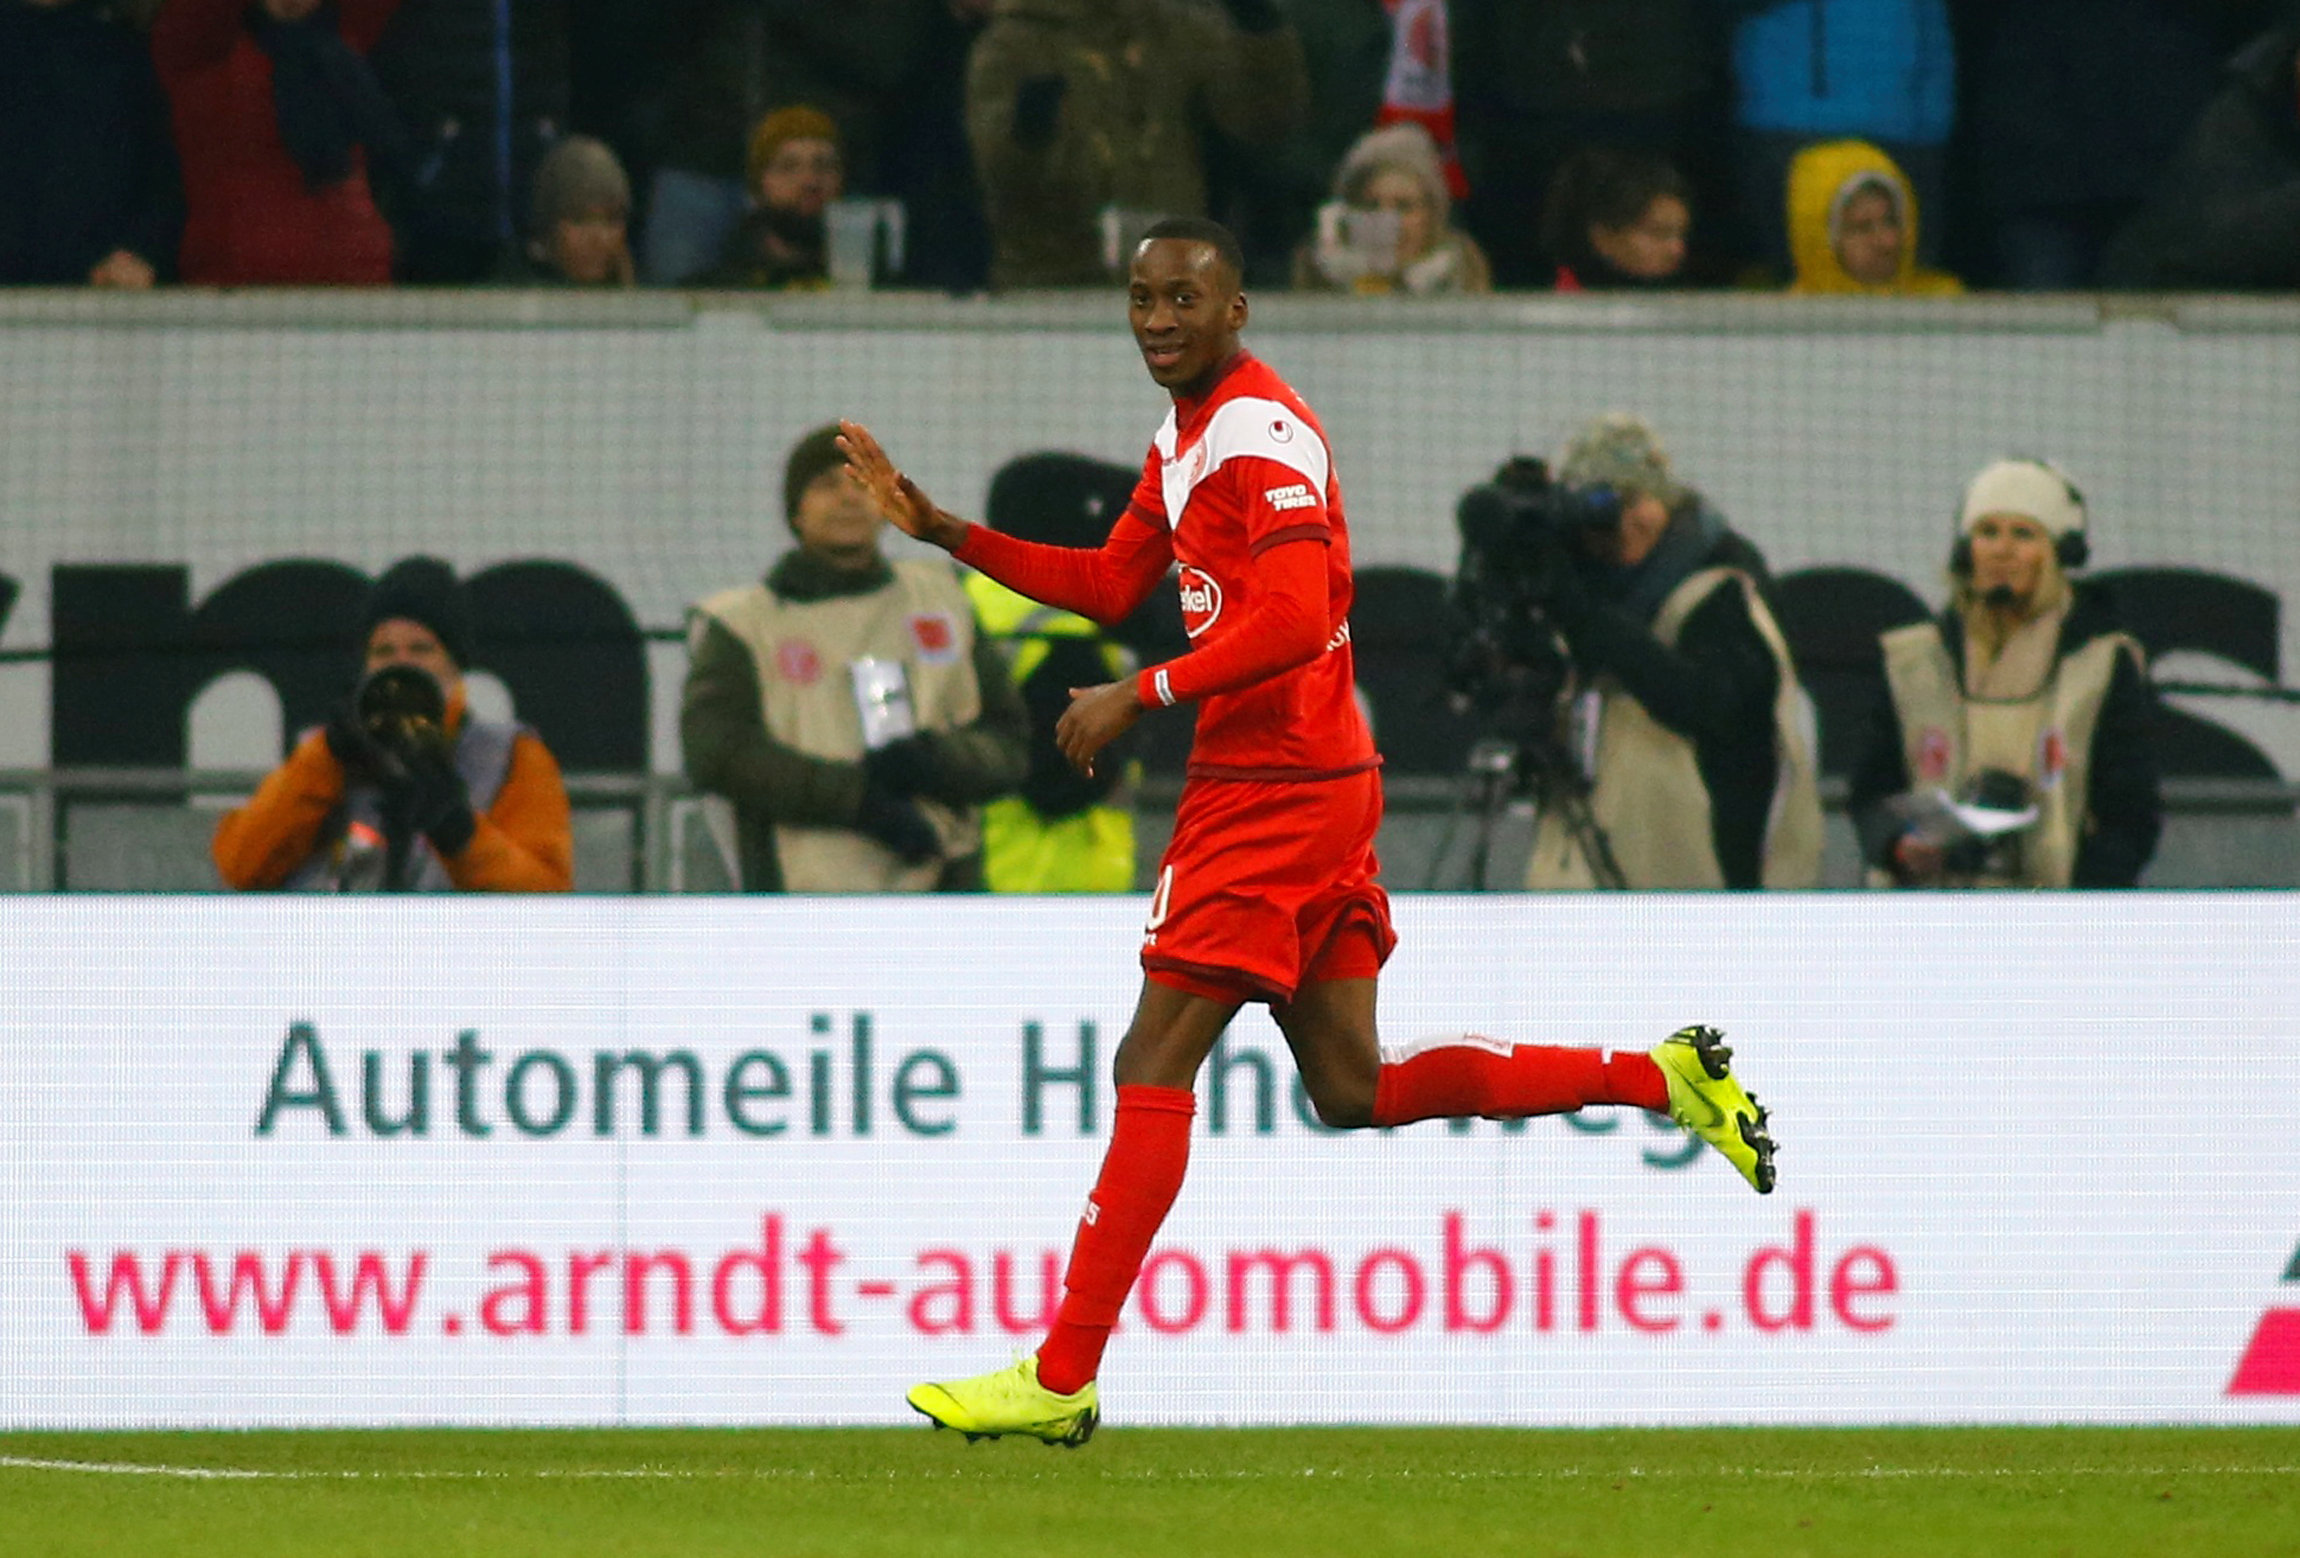 Dodi Lukebakio has impressed at Fortuna Dusseldorf this season. Picture: Action Images